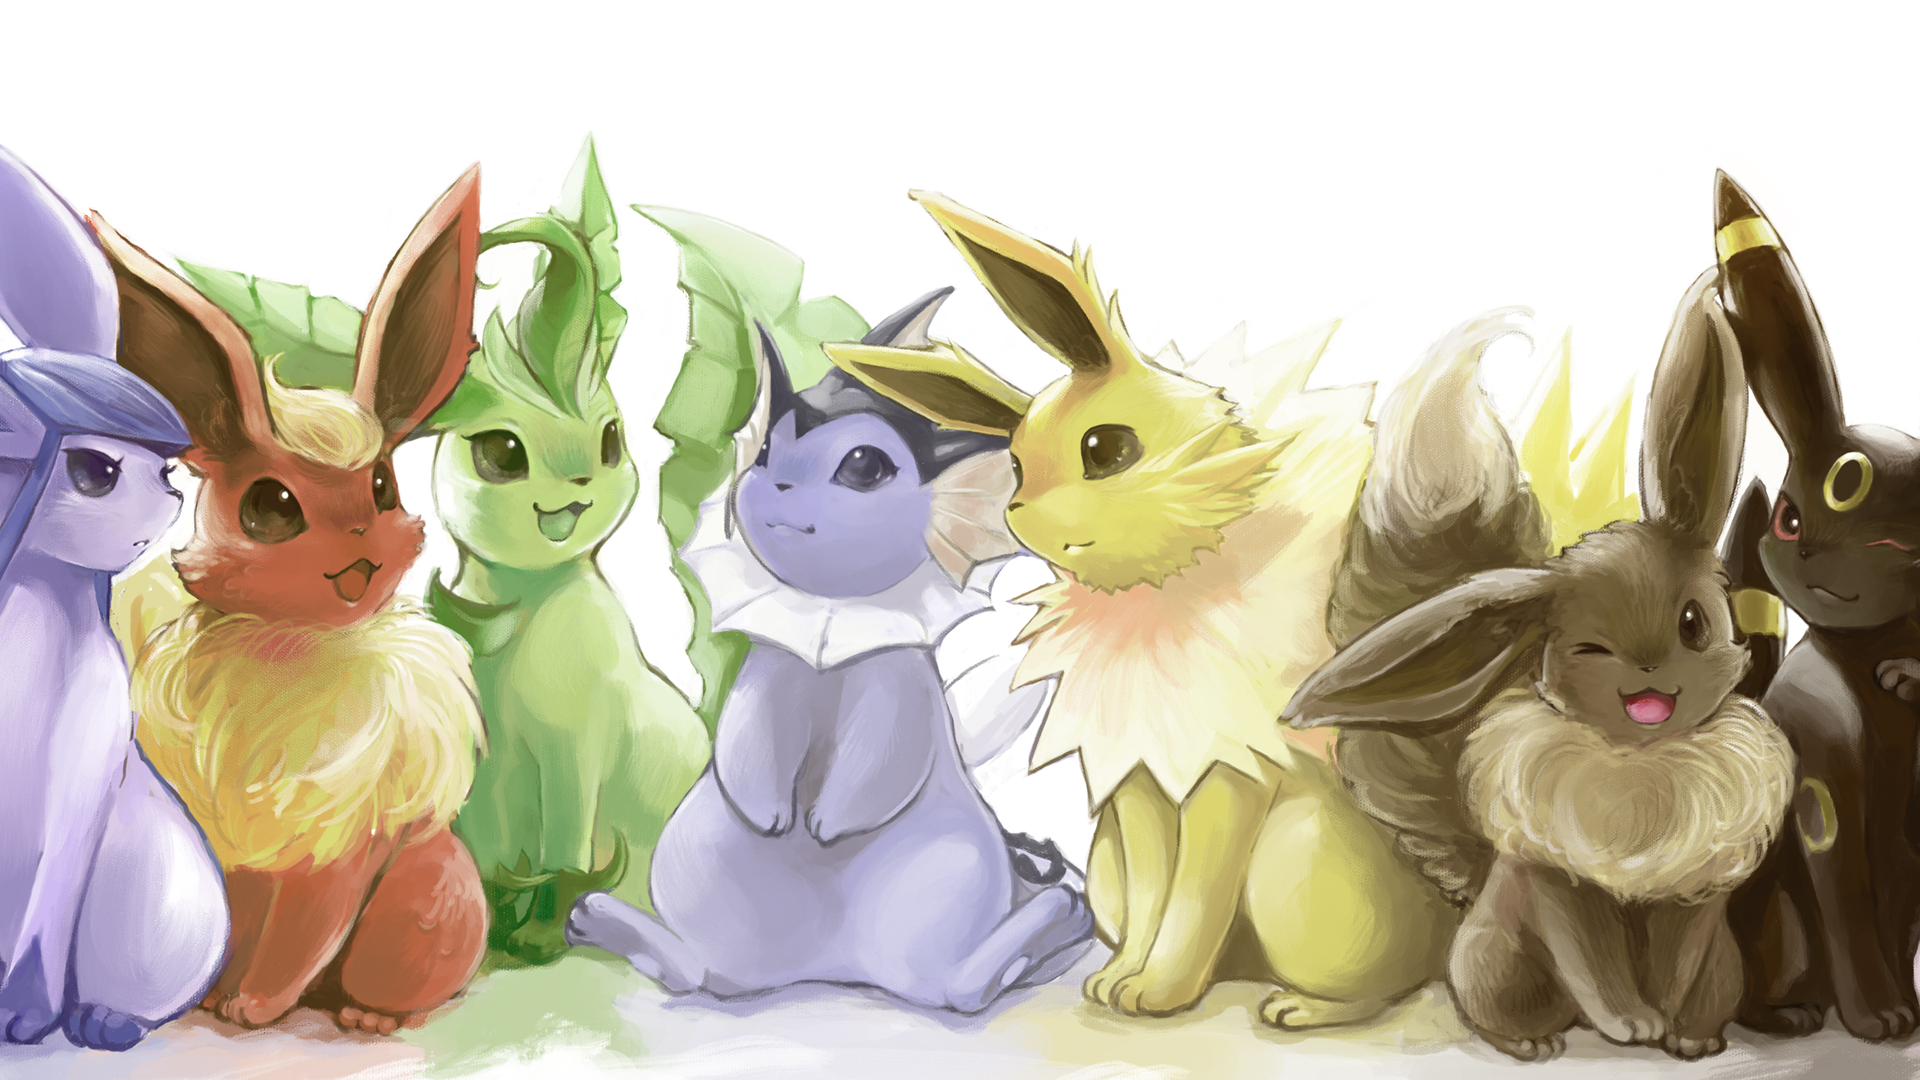 Anime - Pokemon  Espeon (Pokémon) Leafeon (Pokémon) Vaporeon (Pokémon) Jolteon (Pokémon) Eevee (Pokemon) Umbreon (Pokémon) Pokémon Eeveelutions Flareon (Pokémon) Wallpaper